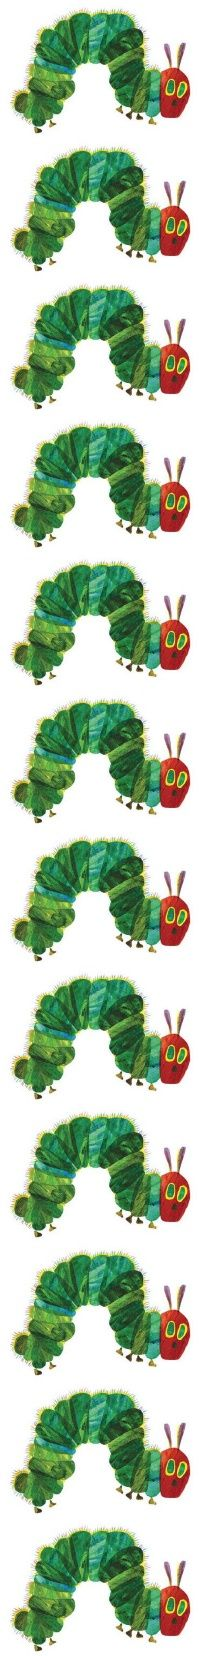 203x1656 Very Hungry Caterpillar Free Printables Hungry Caterpillar Food